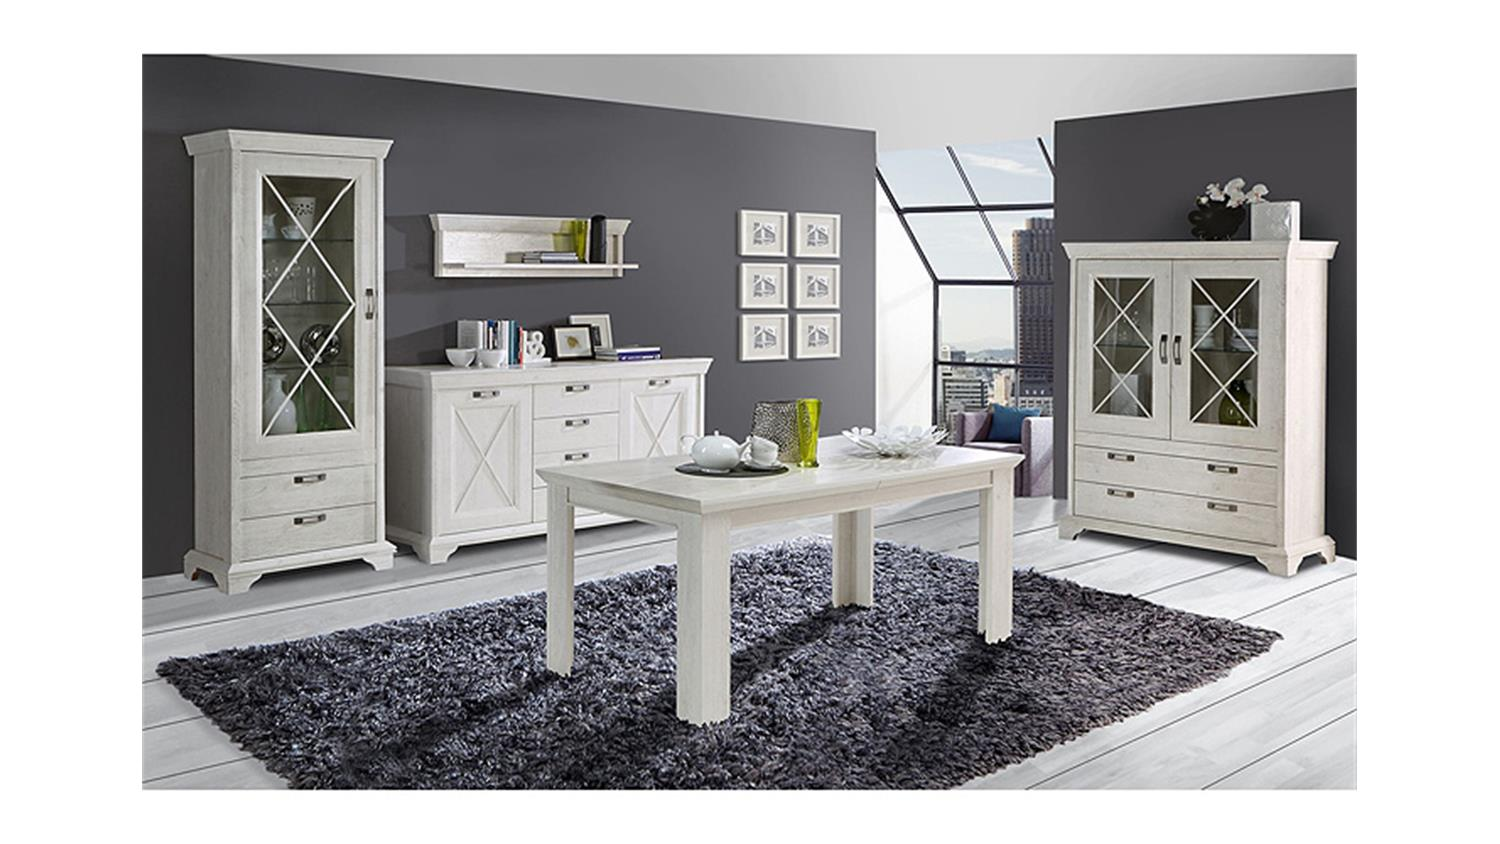 kashmir esstisch interior design und m bel ideen. Black Bedroom Furniture Sets. Home Design Ideas